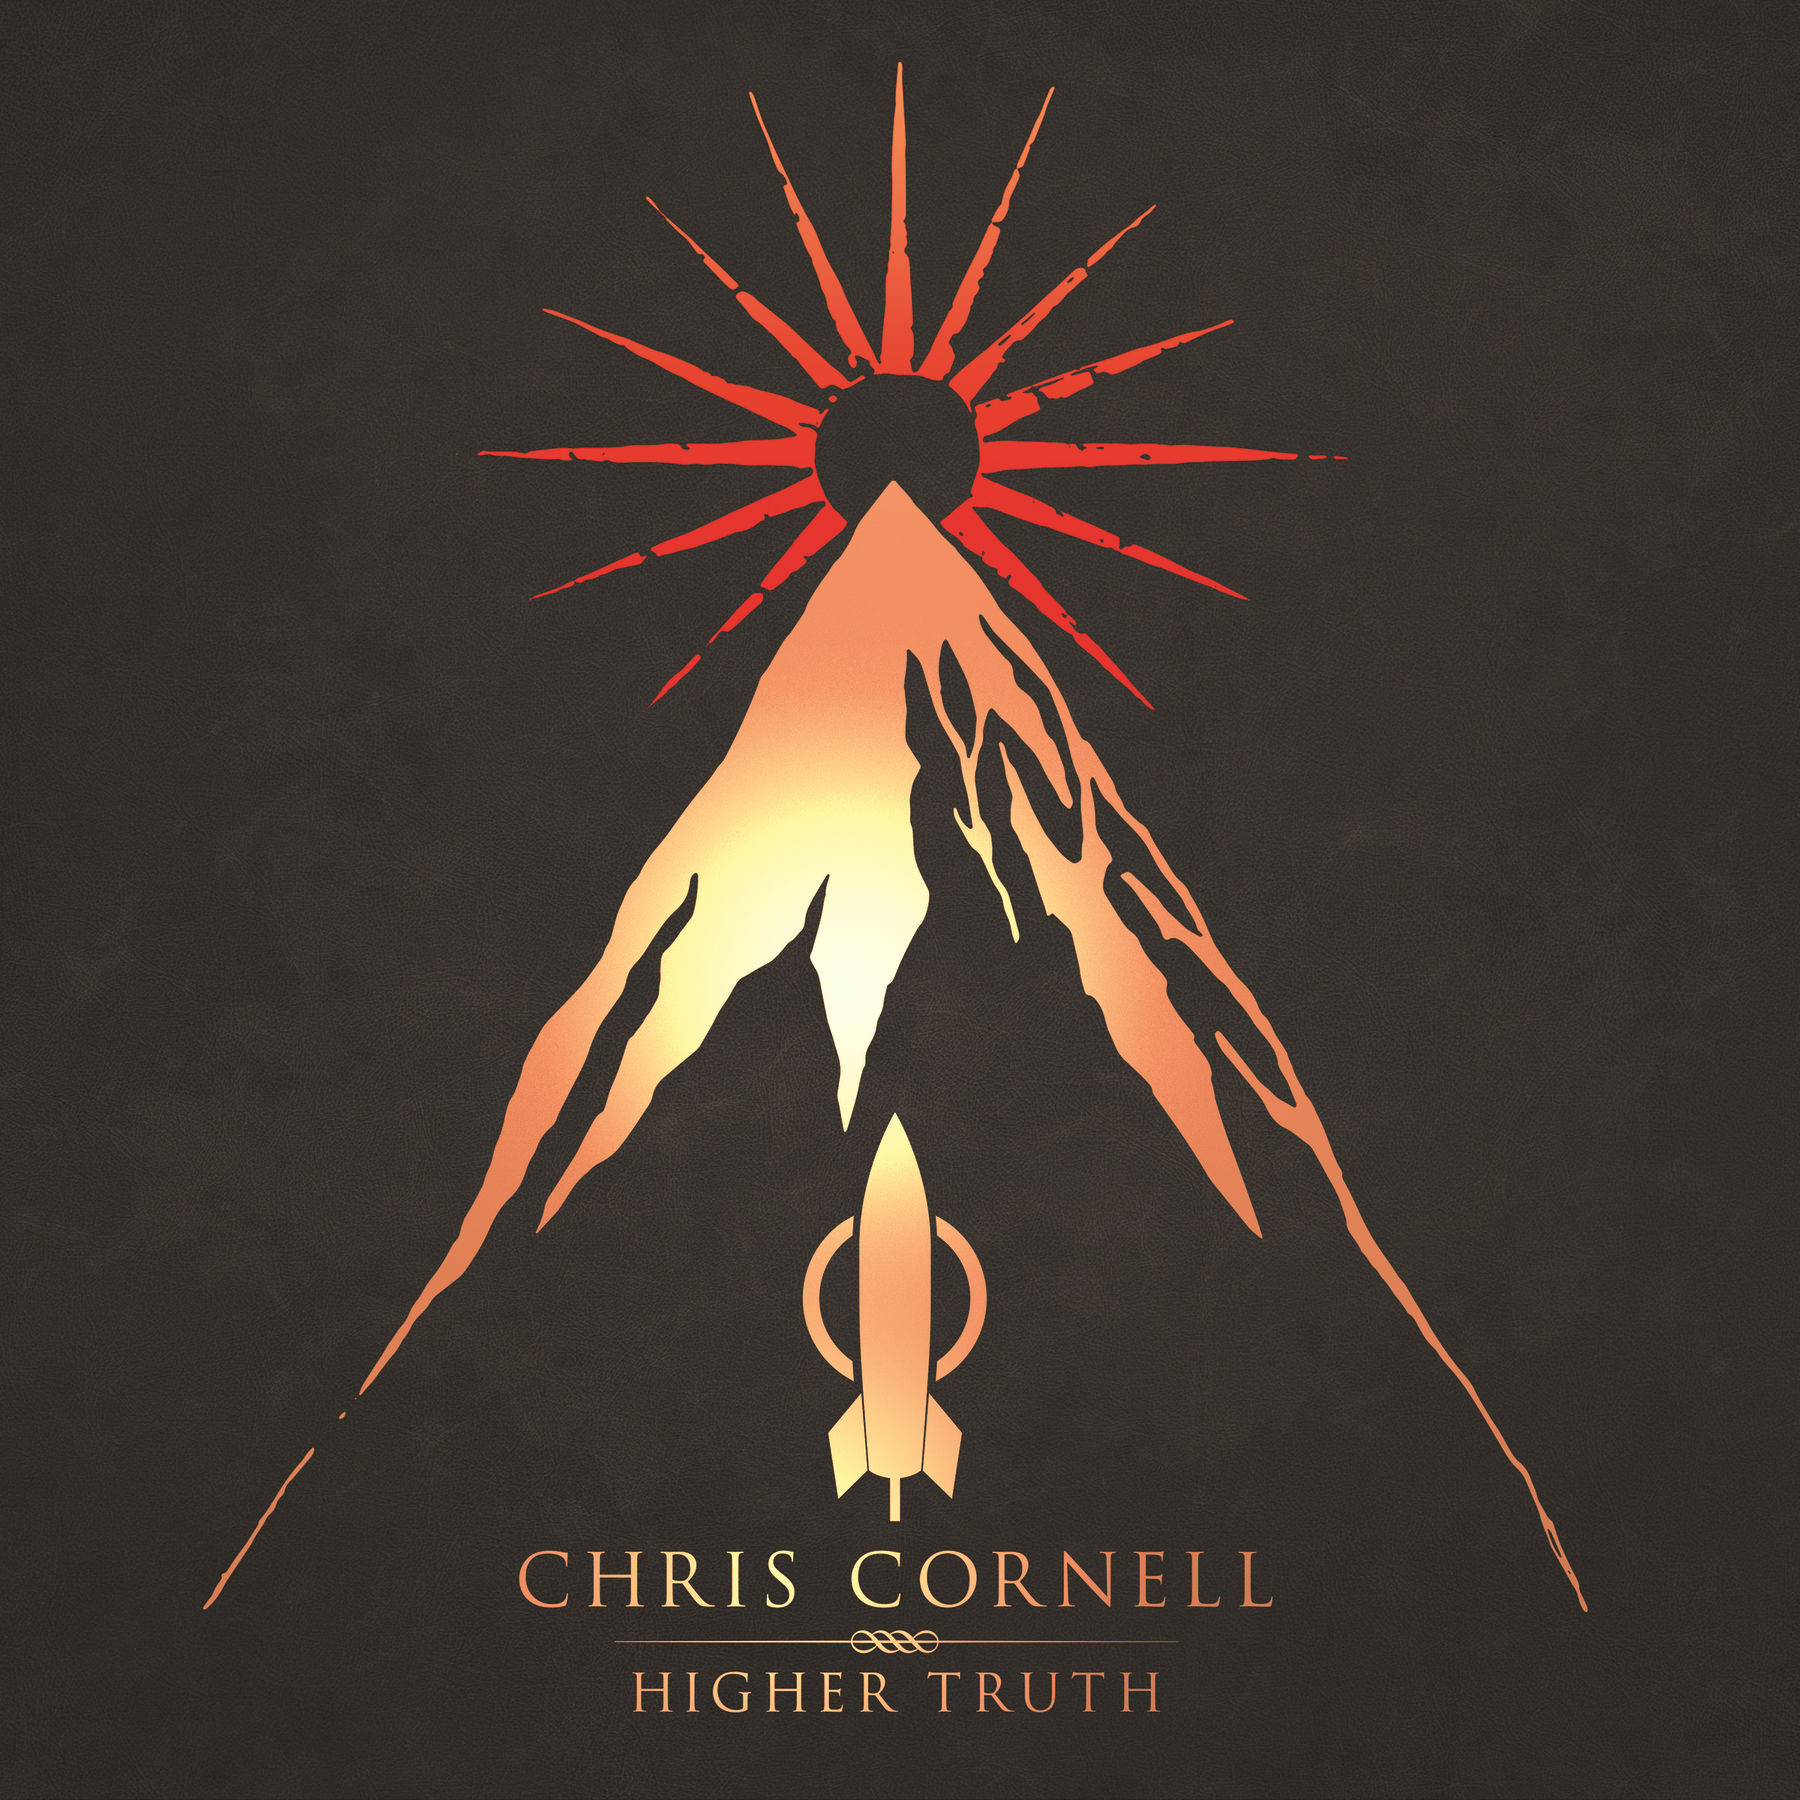 Chris Cornell (2015) Higher Truth